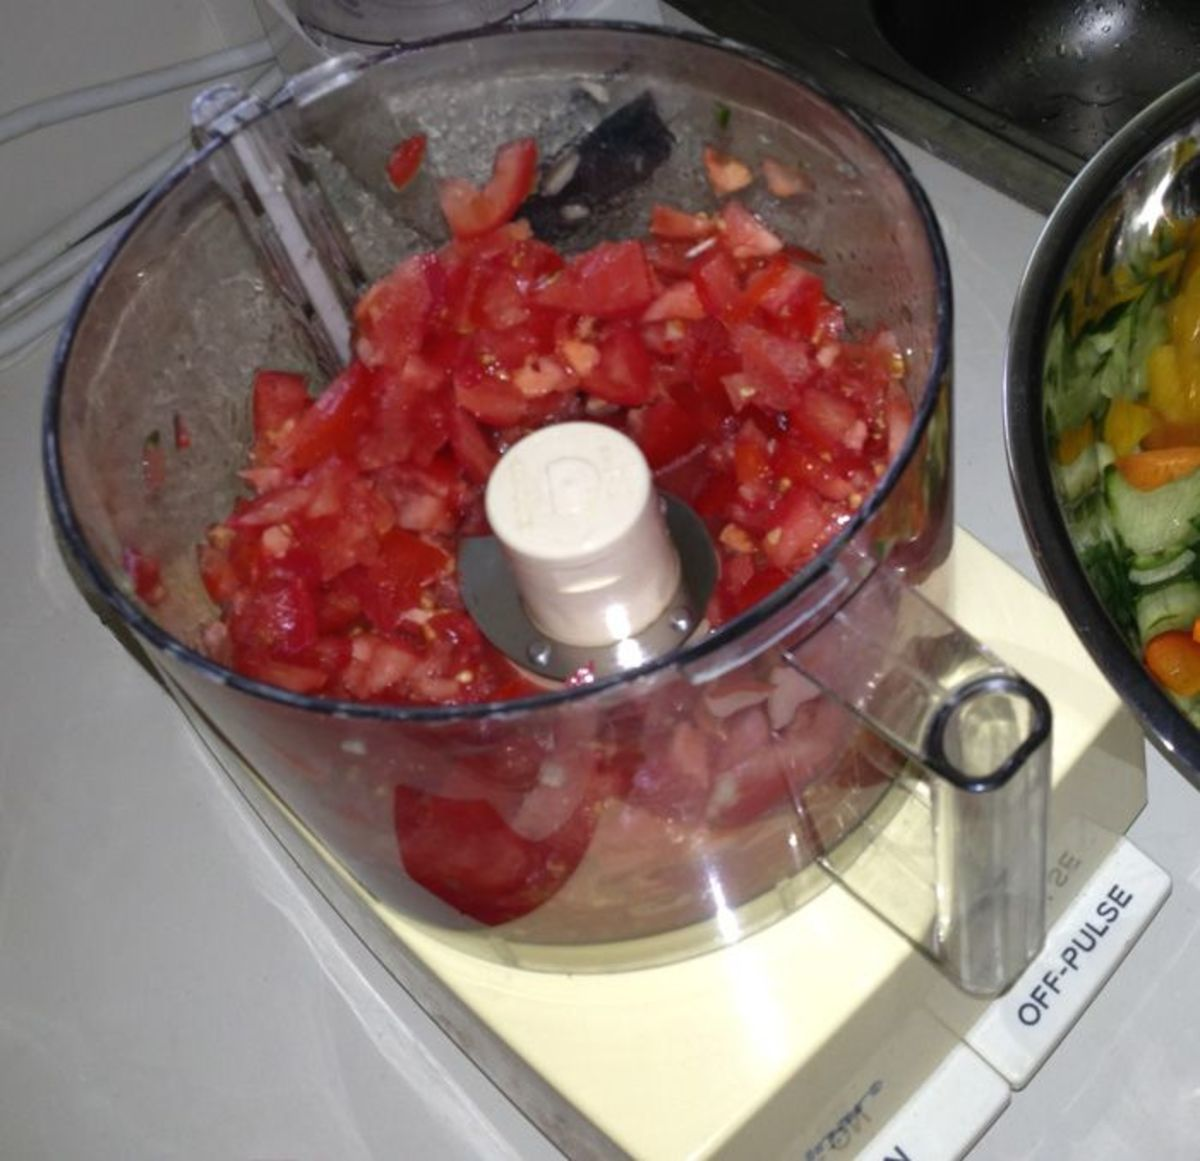 Coarsely chopped tomatoes in food processor